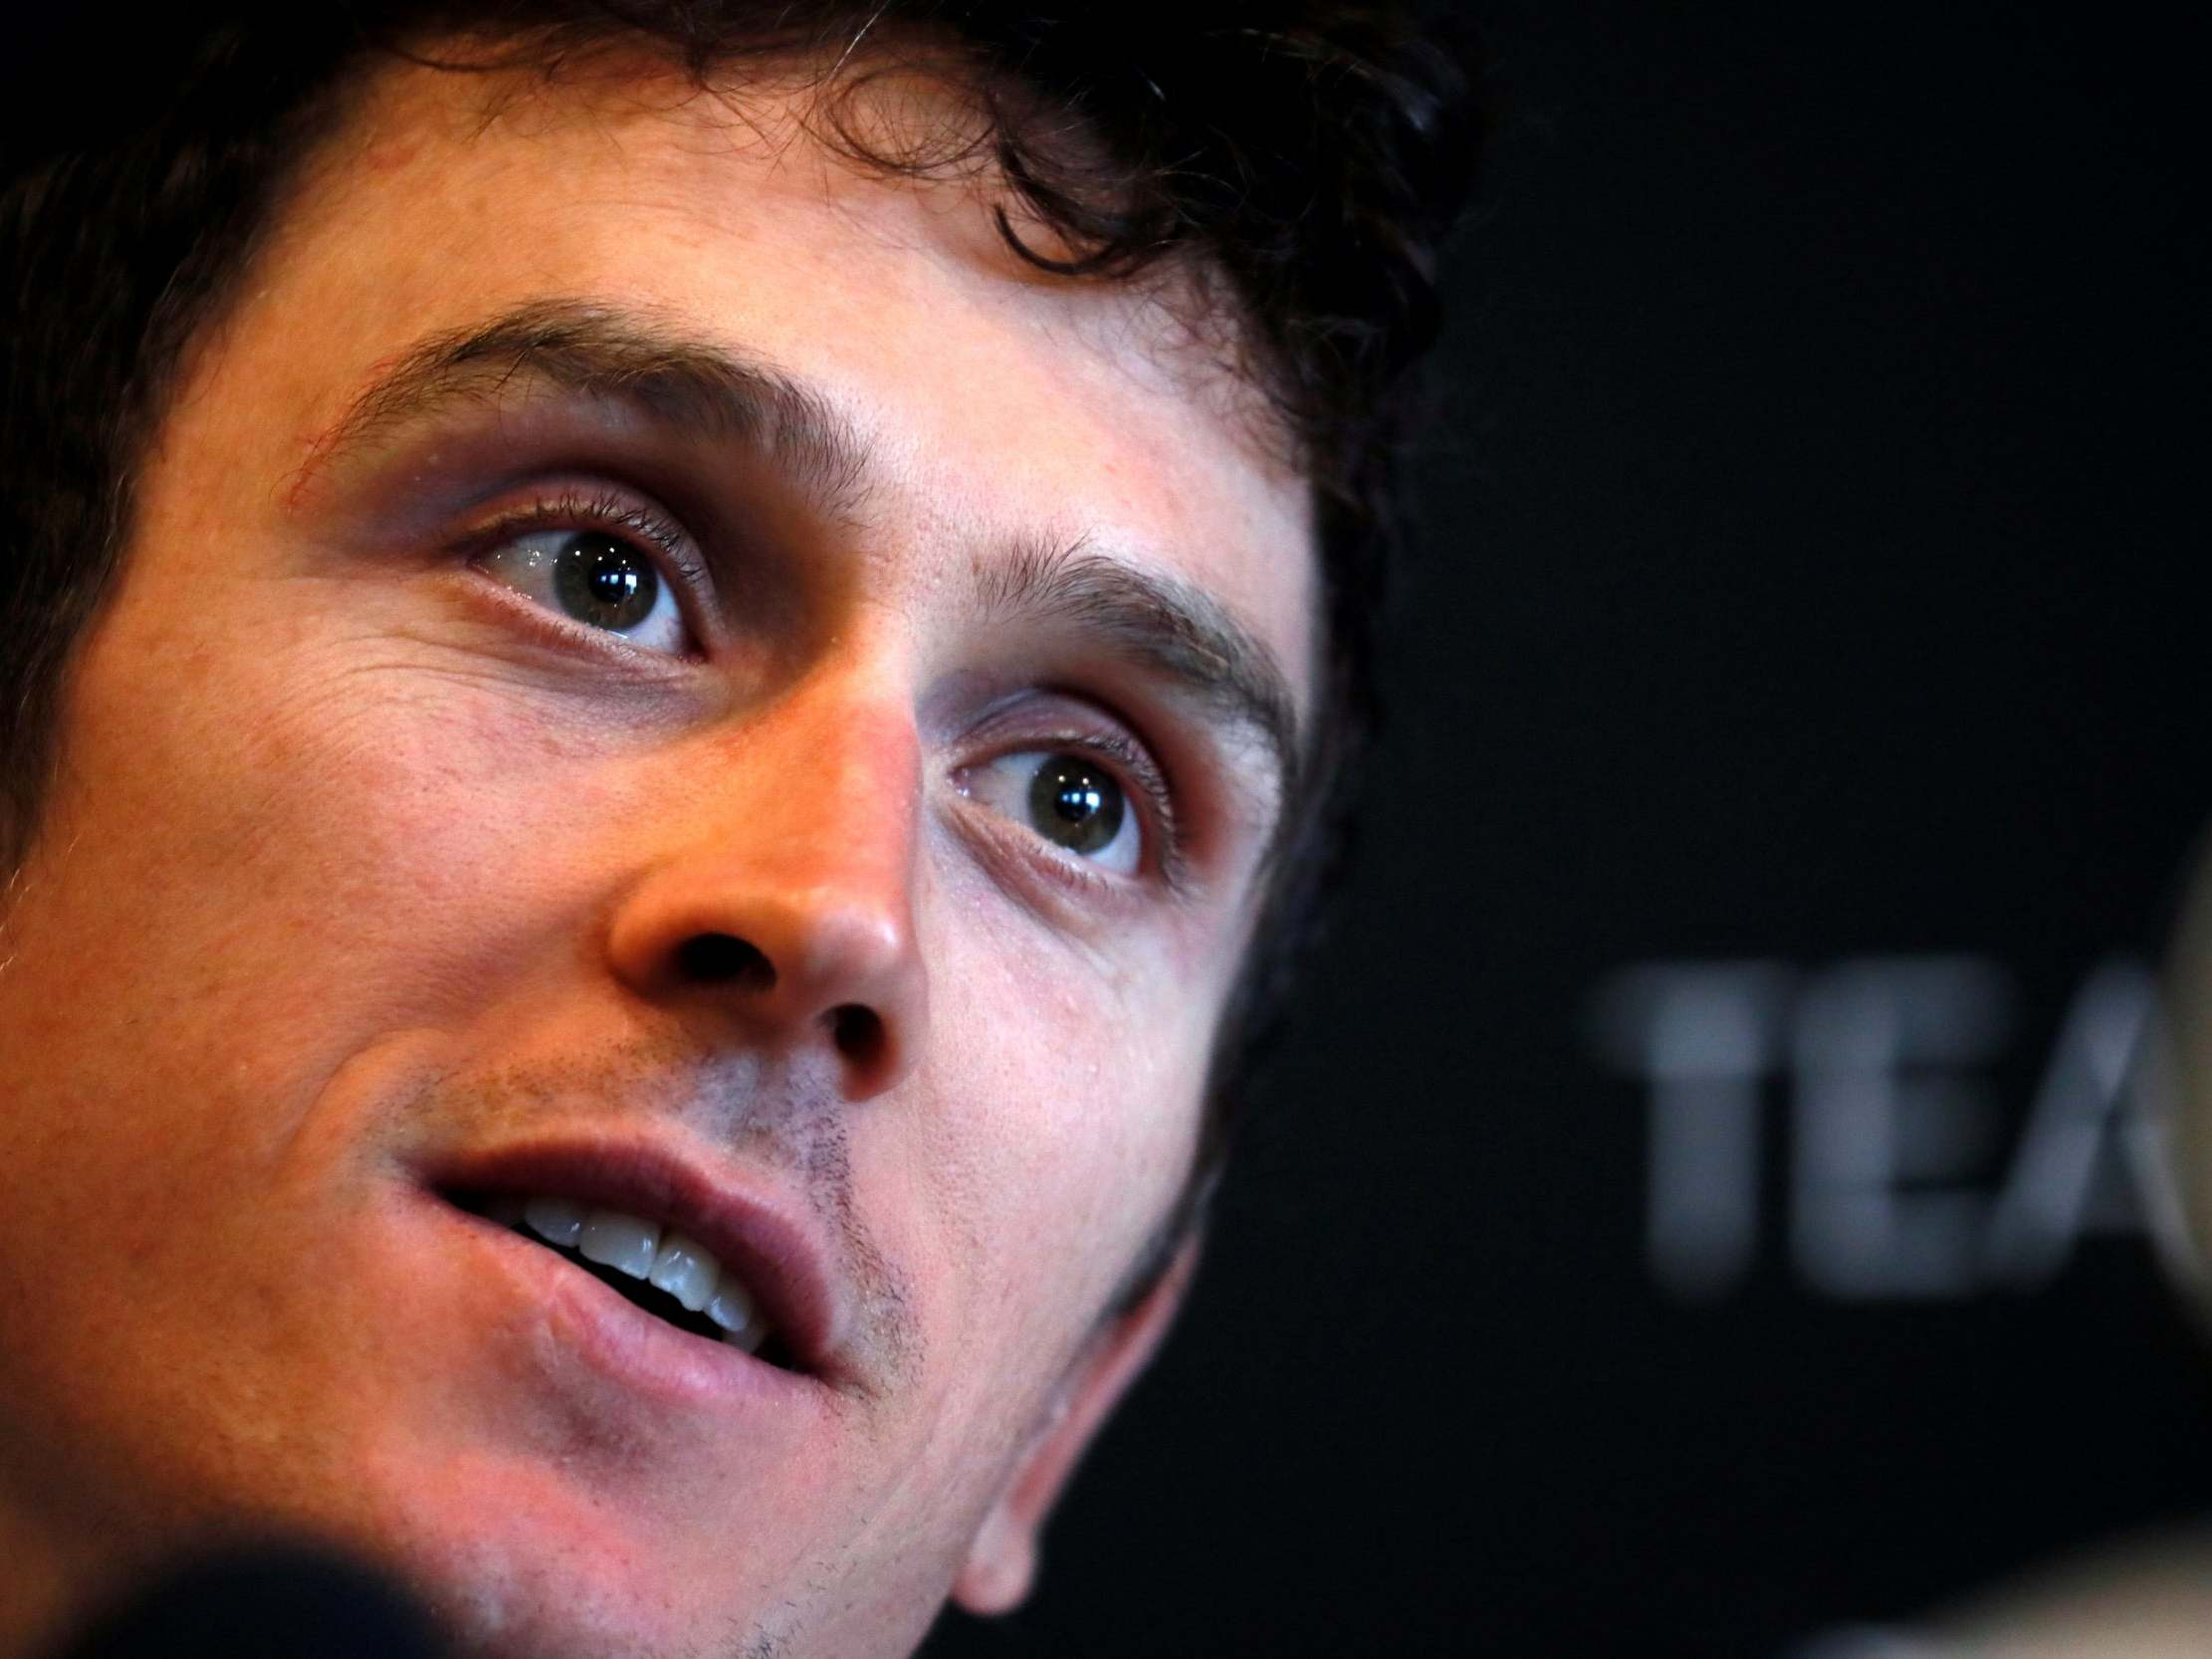 Tour de France 2019: Geraint Thomas insists he and Team Ineos co-leader Egan Bernal are not rivals